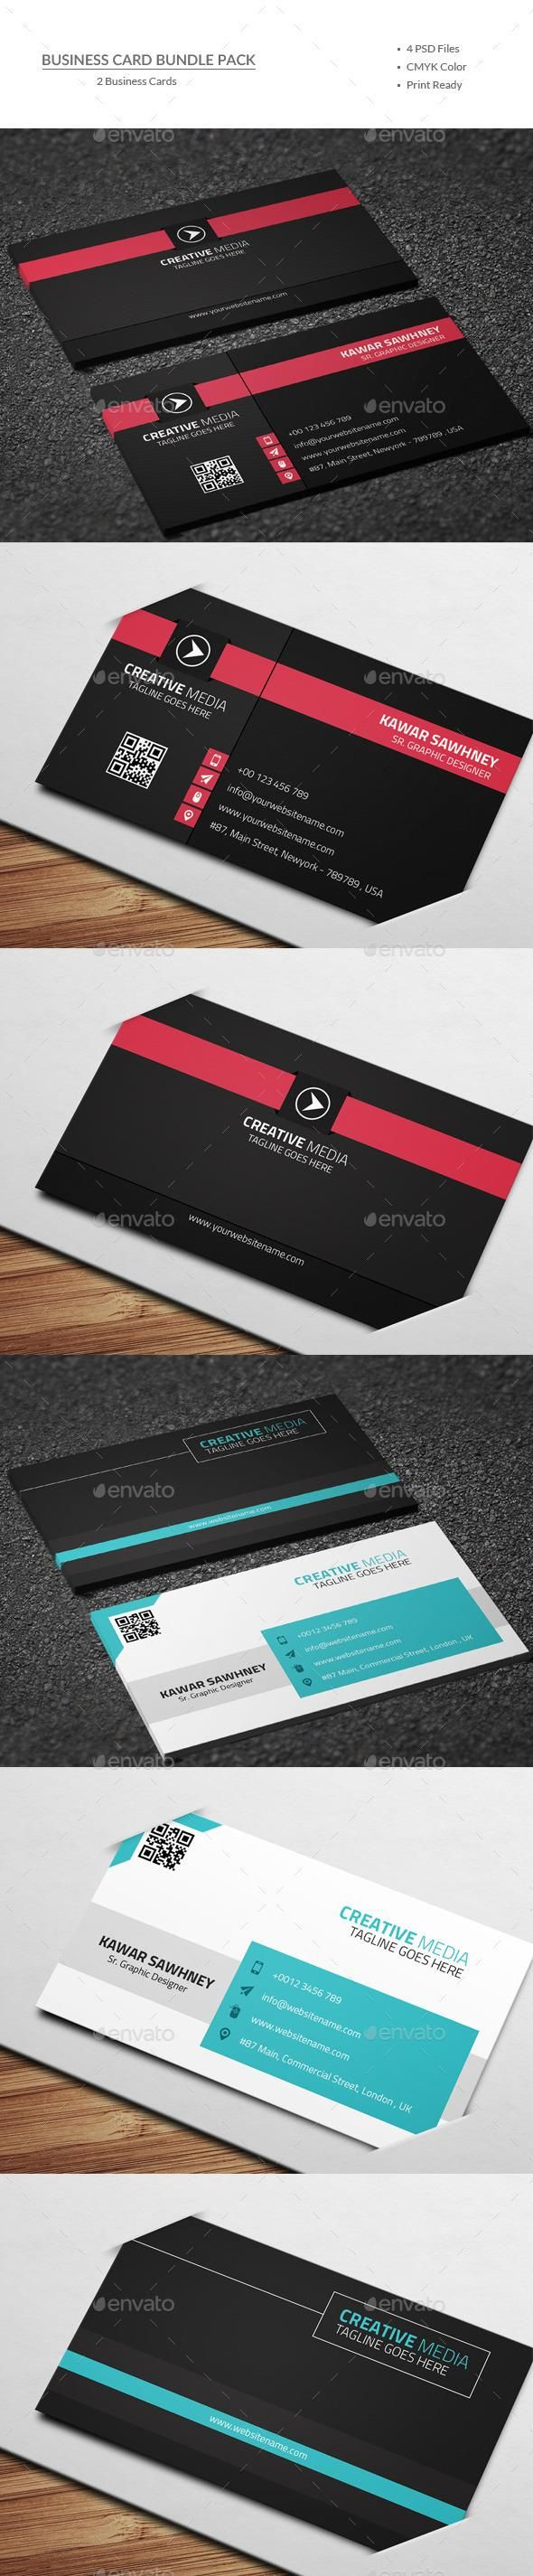 99 Best Business Cards Images On Pinterest Business Cards